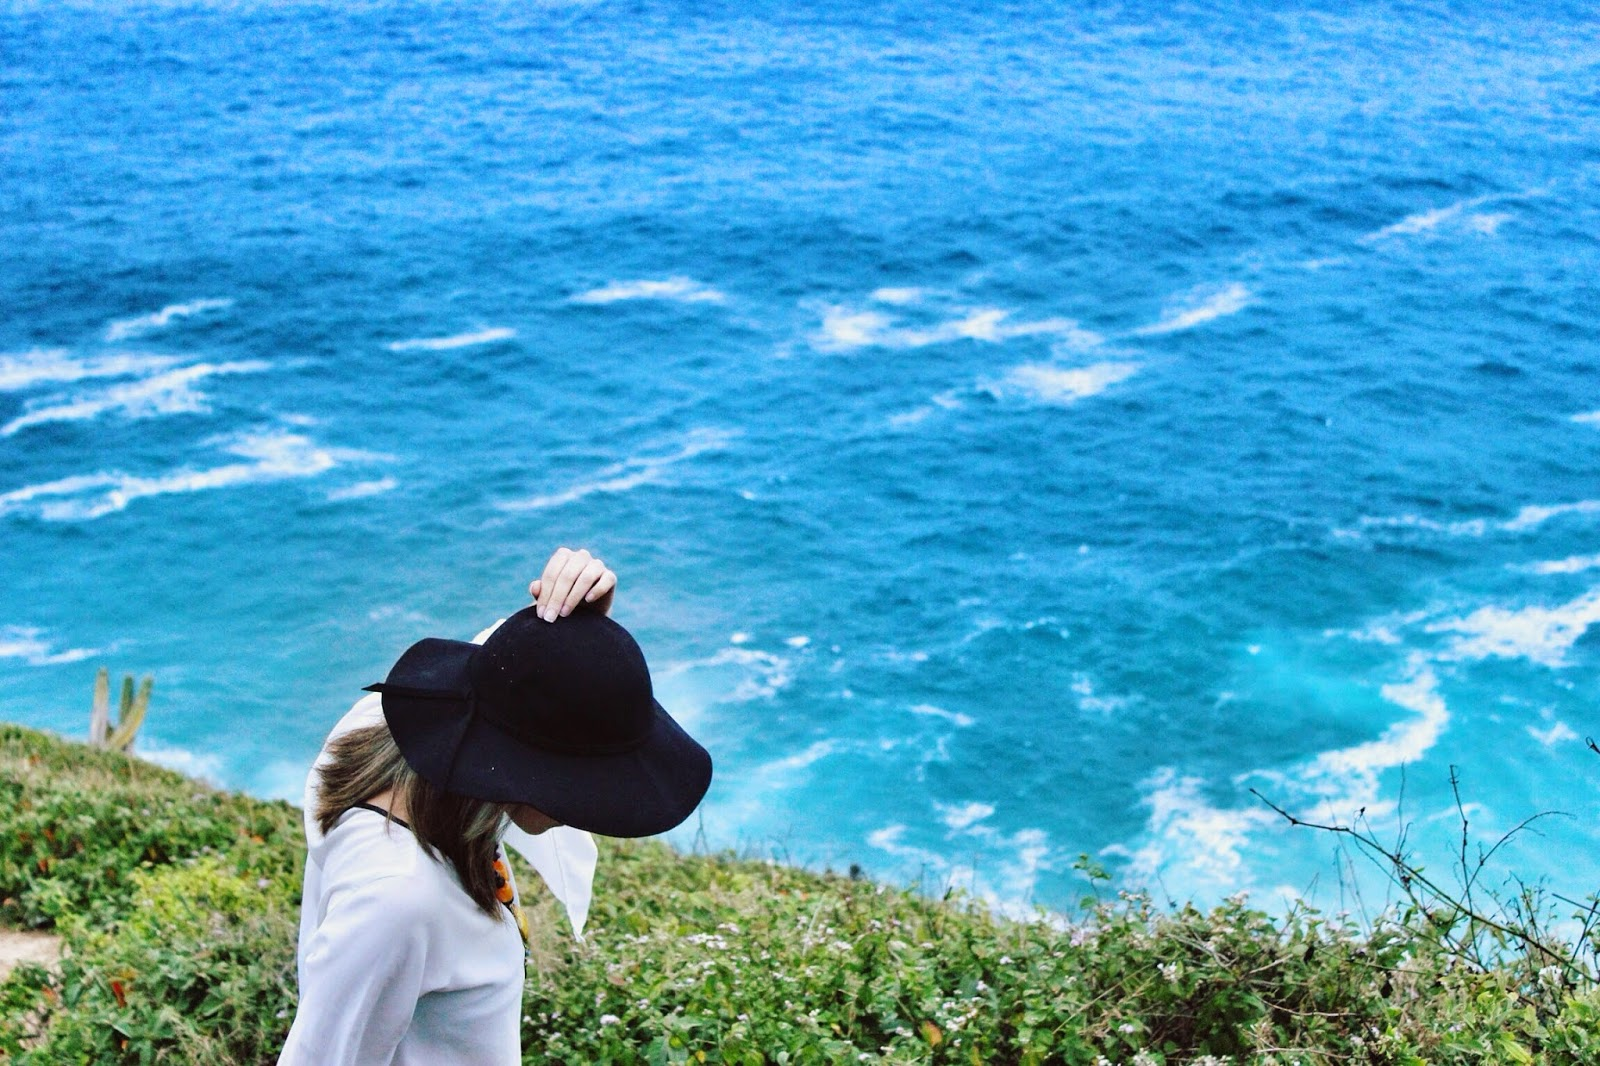 lifesthayle-arraial-do-cabo-mirante.JPG